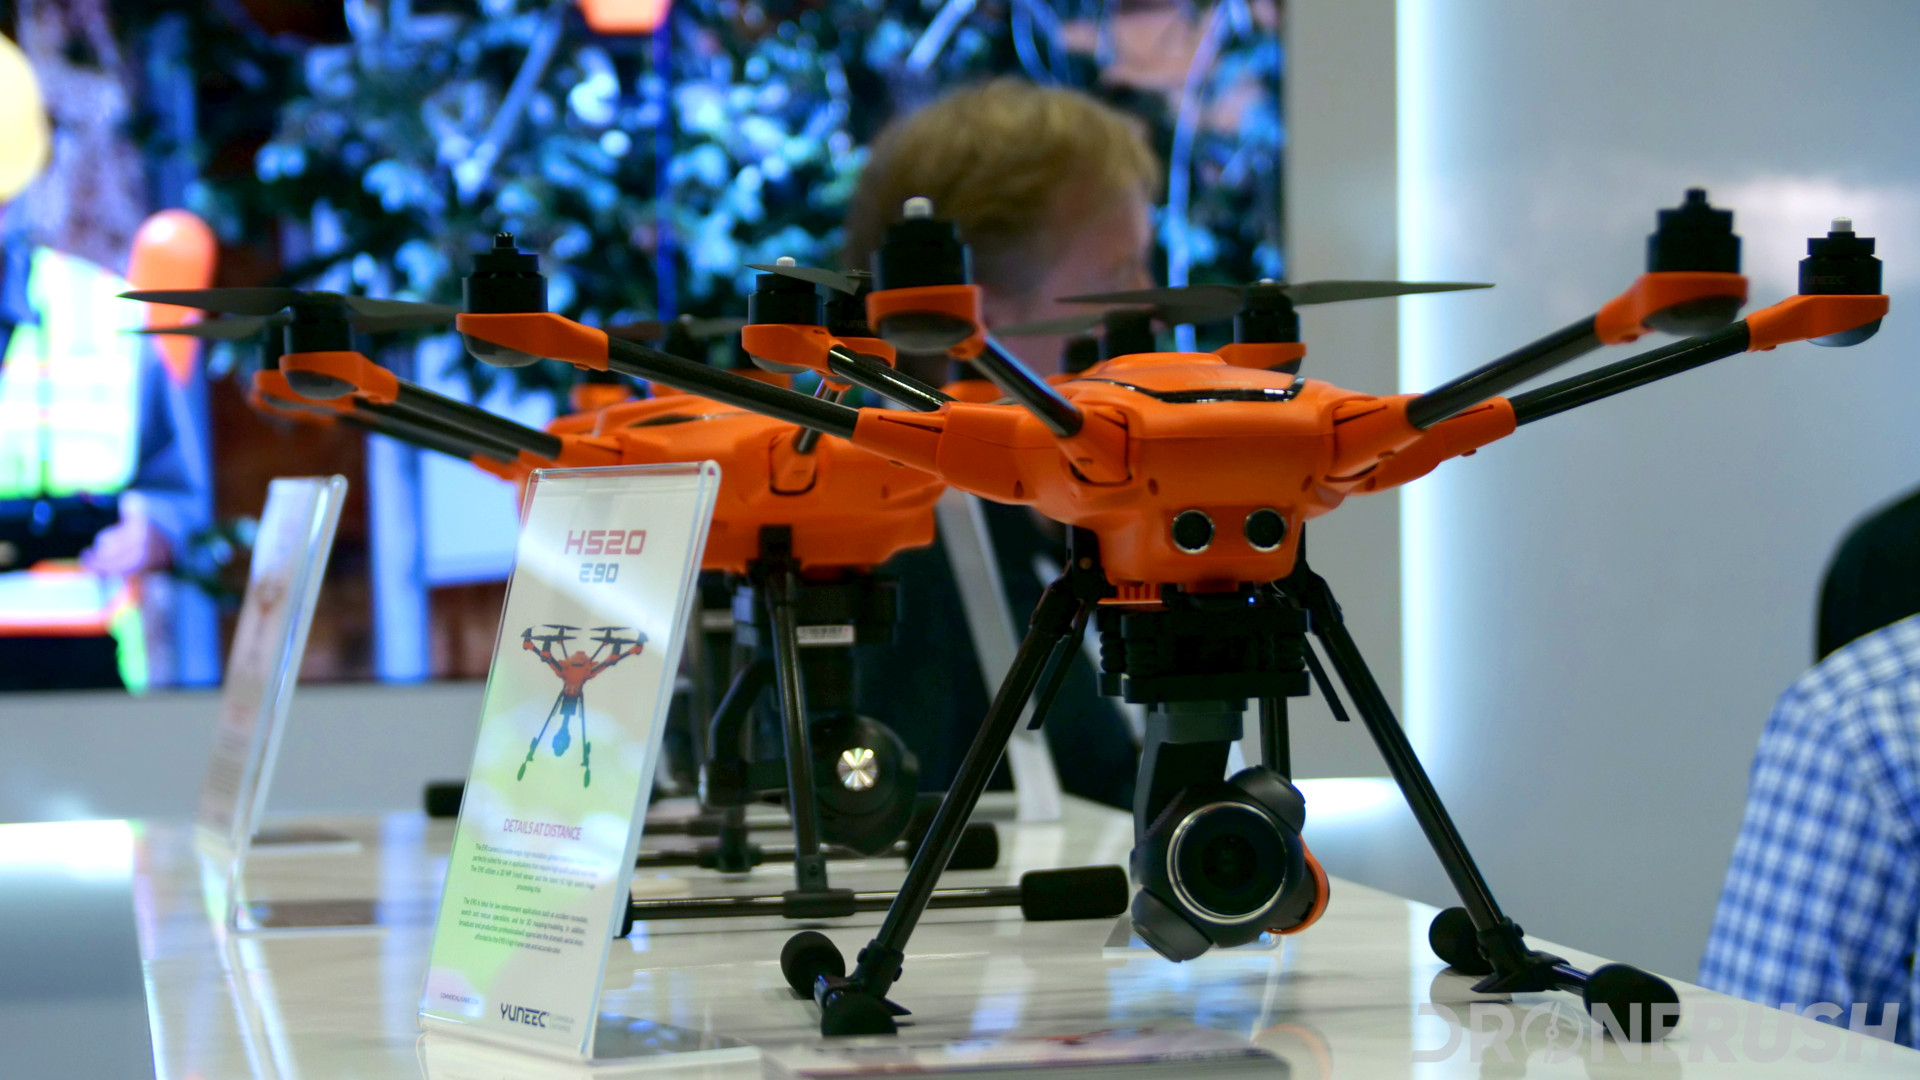 The drones of InterDrone 2017 - Drone Rush